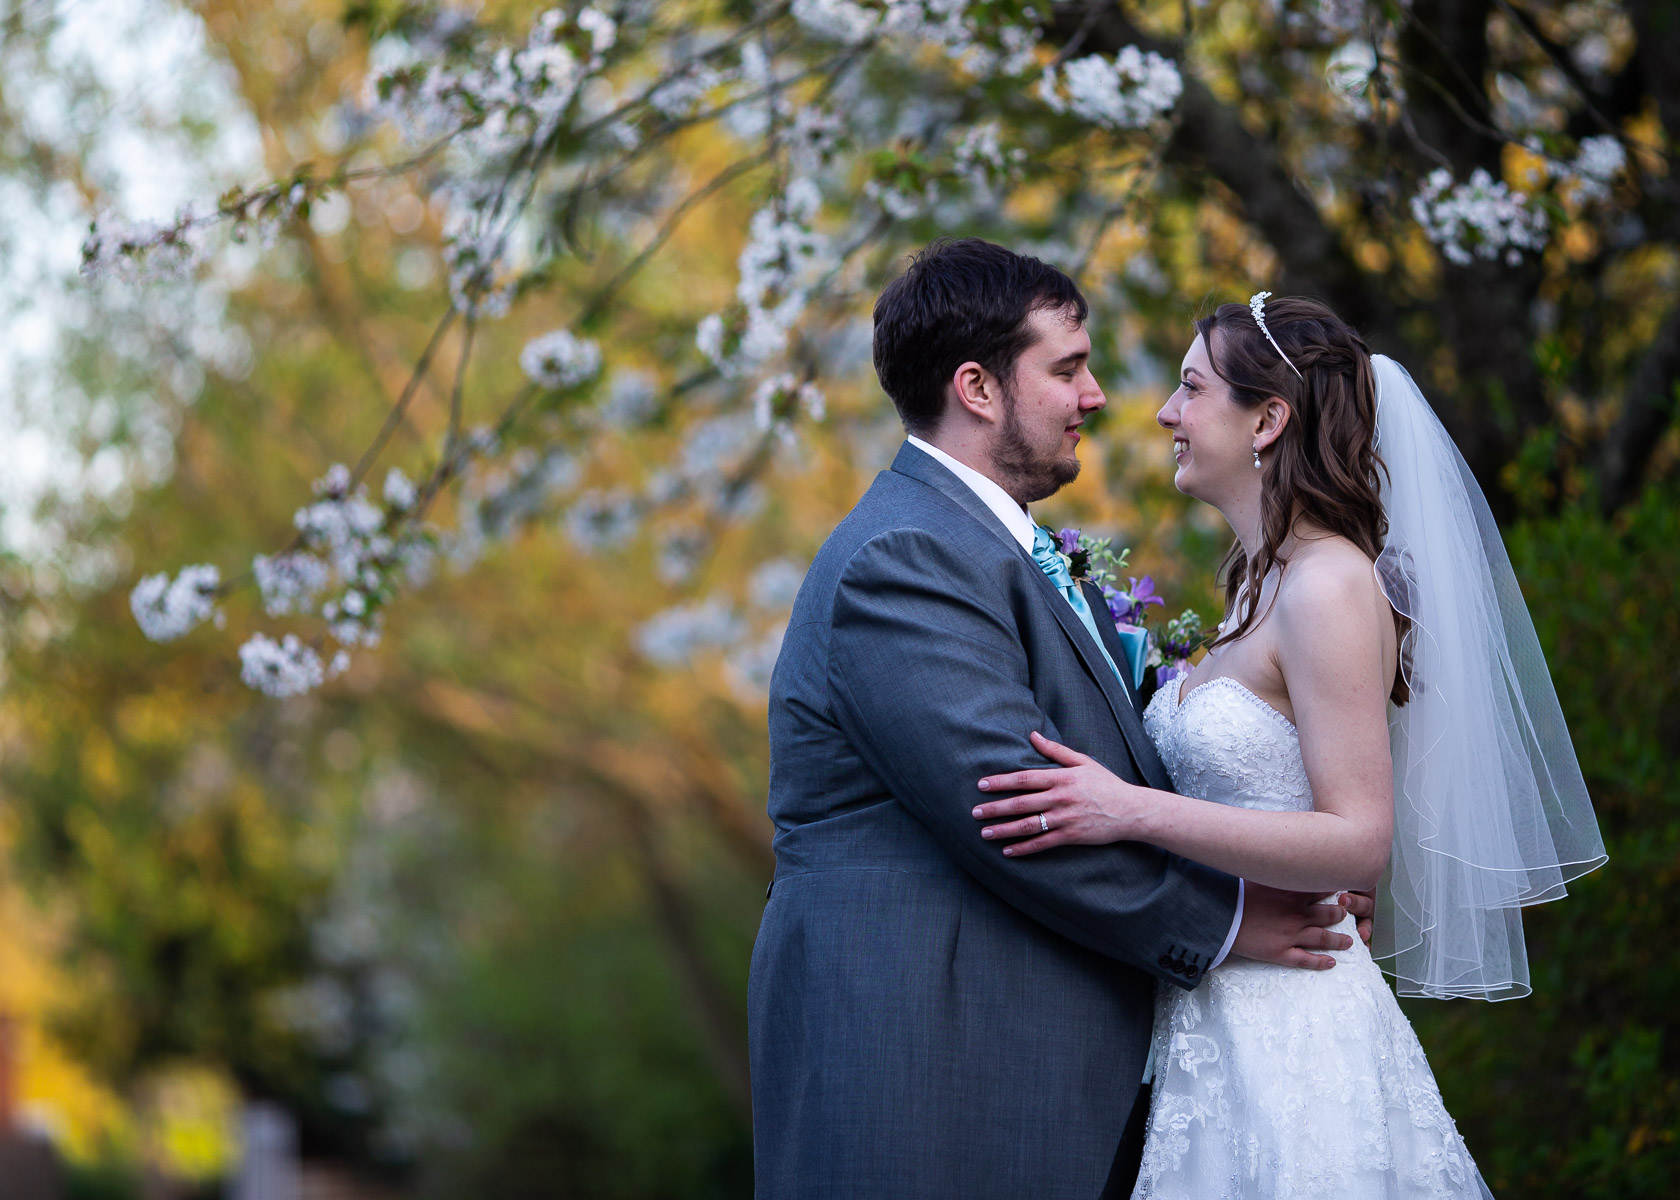 Romantic and relaxed wedding photo shoot